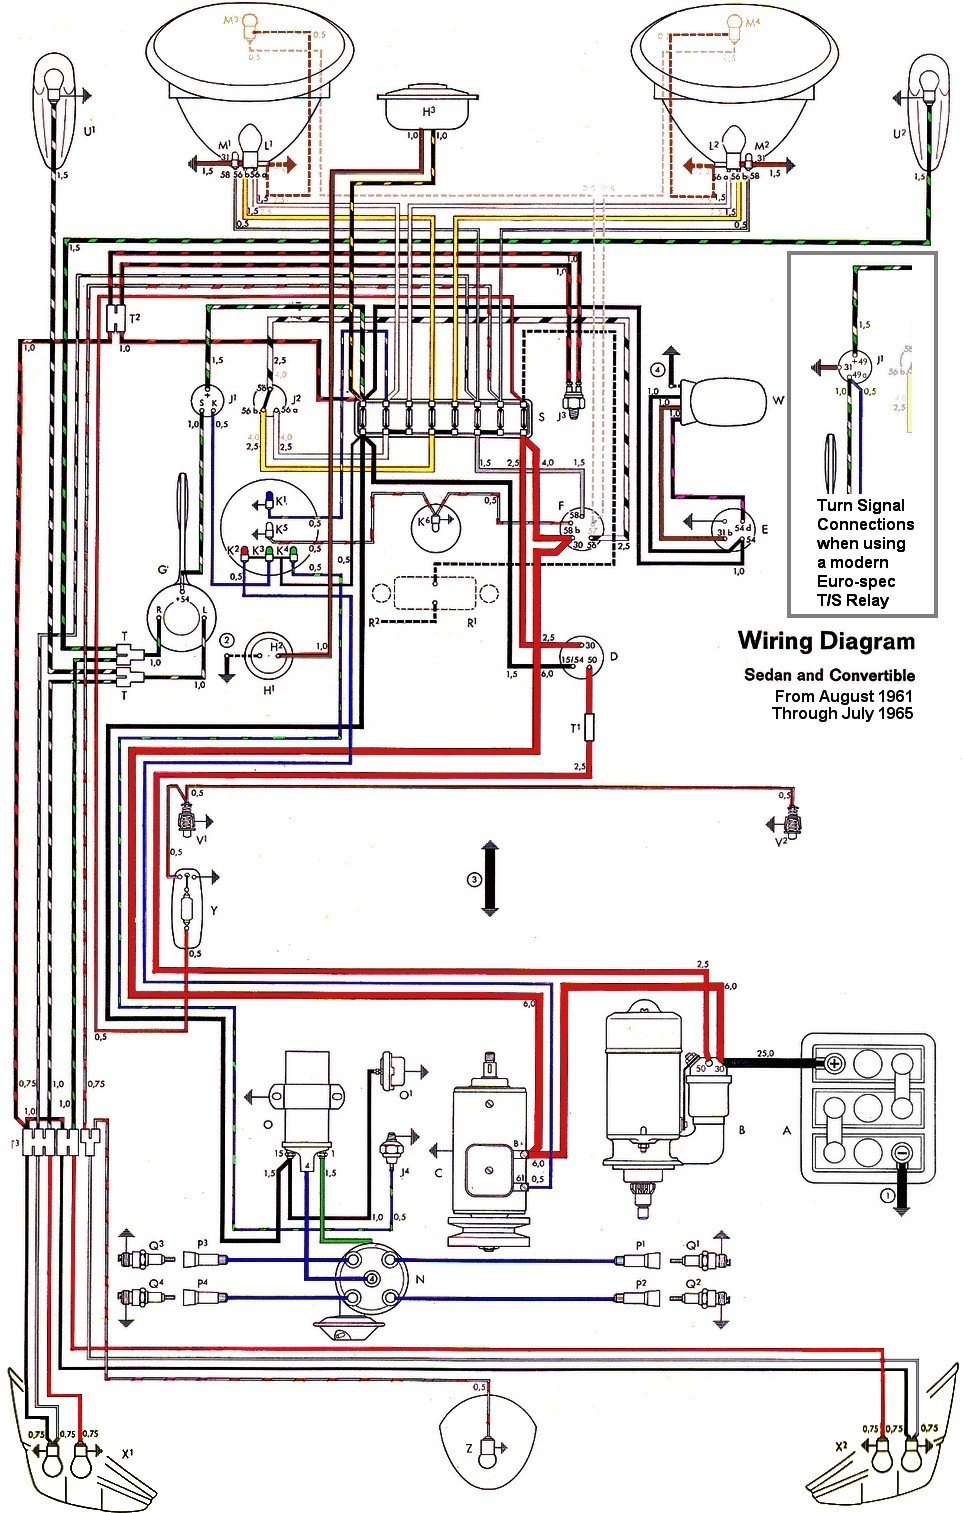 starter wiring diagram 68 vw bug wiring diagram for light switch u2022 rh prestonfarmmotors co 73 Super Beetle Wiring Diagram 1974 VW Super Beetle Alternator Diagram